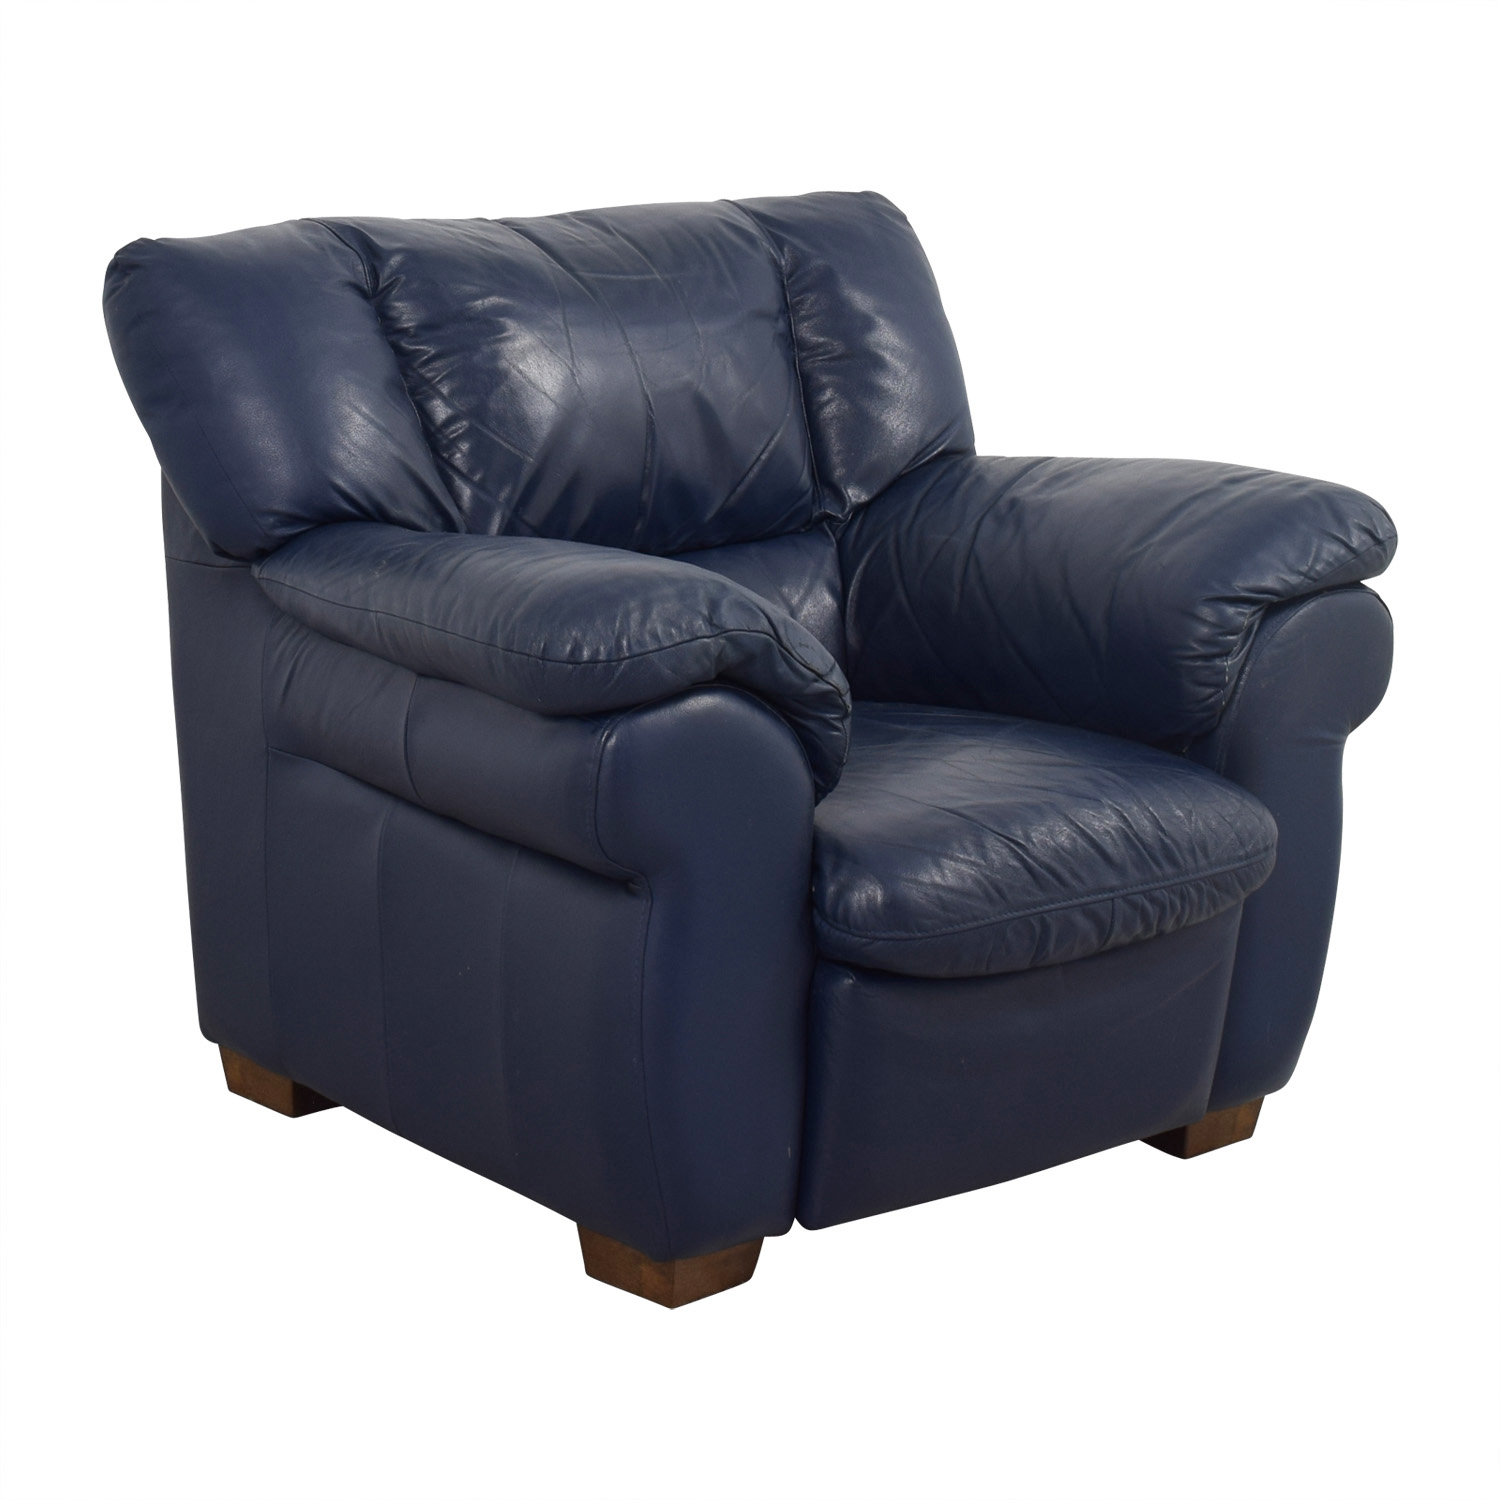 second hand chair covers for sale outside chaise lounge chairs 90 off macy 39s navy blue leather sofa